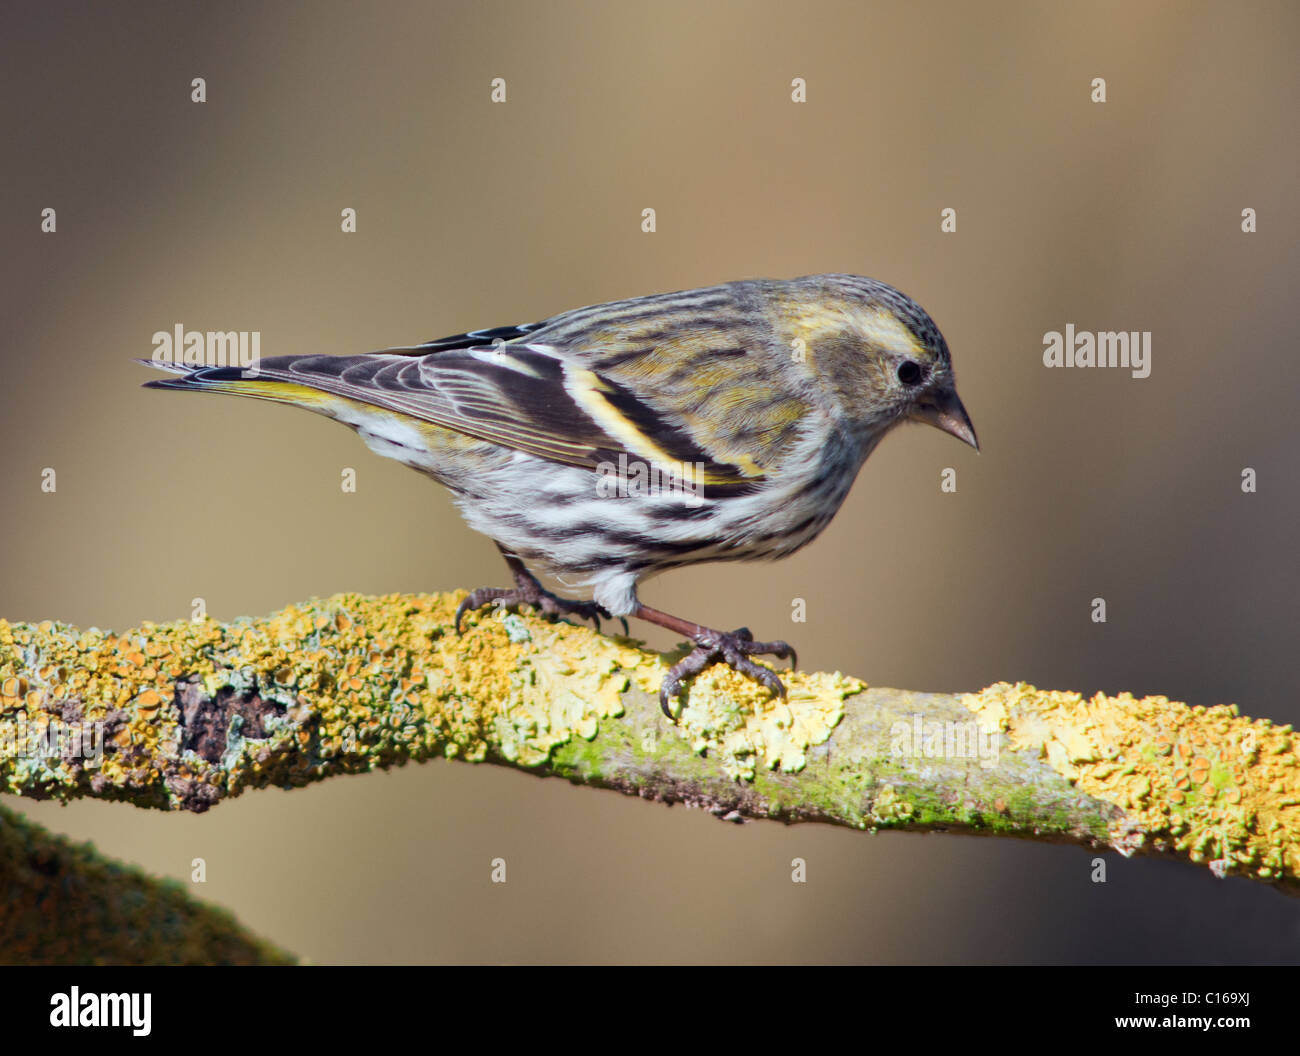 Female Siskin (Carduelis spinus) perched on branch - Stock Image